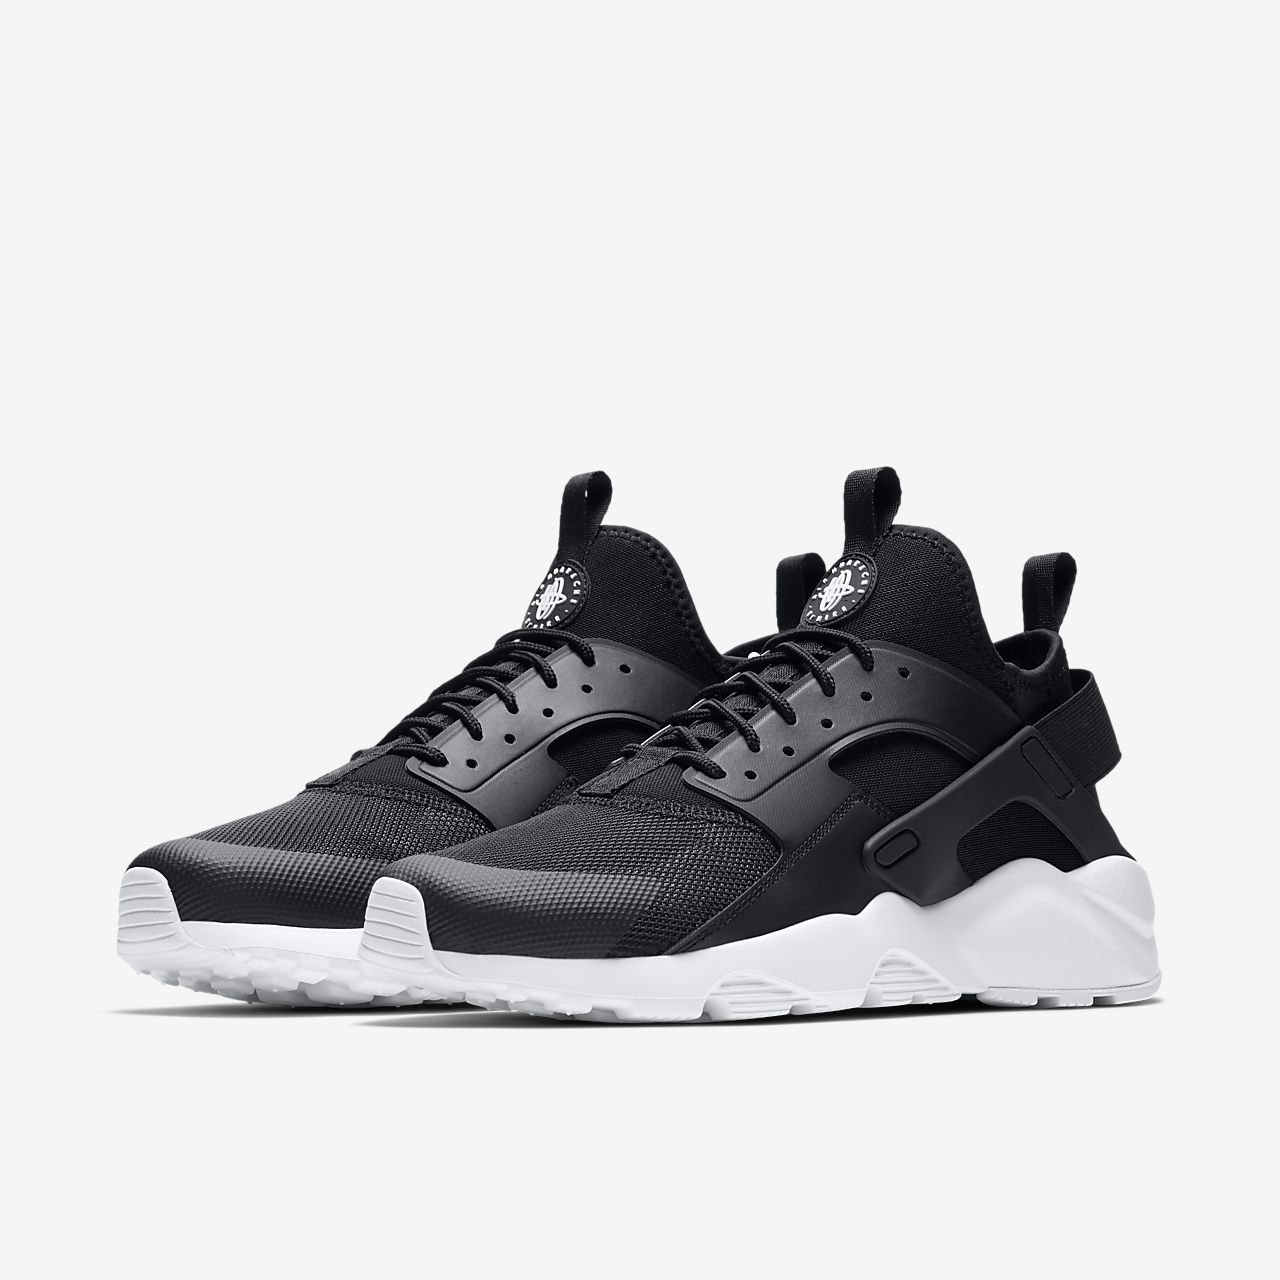 best sneakers c5a43 247bb ... Chaussure Nike Air Huarache Ultra pour Homme